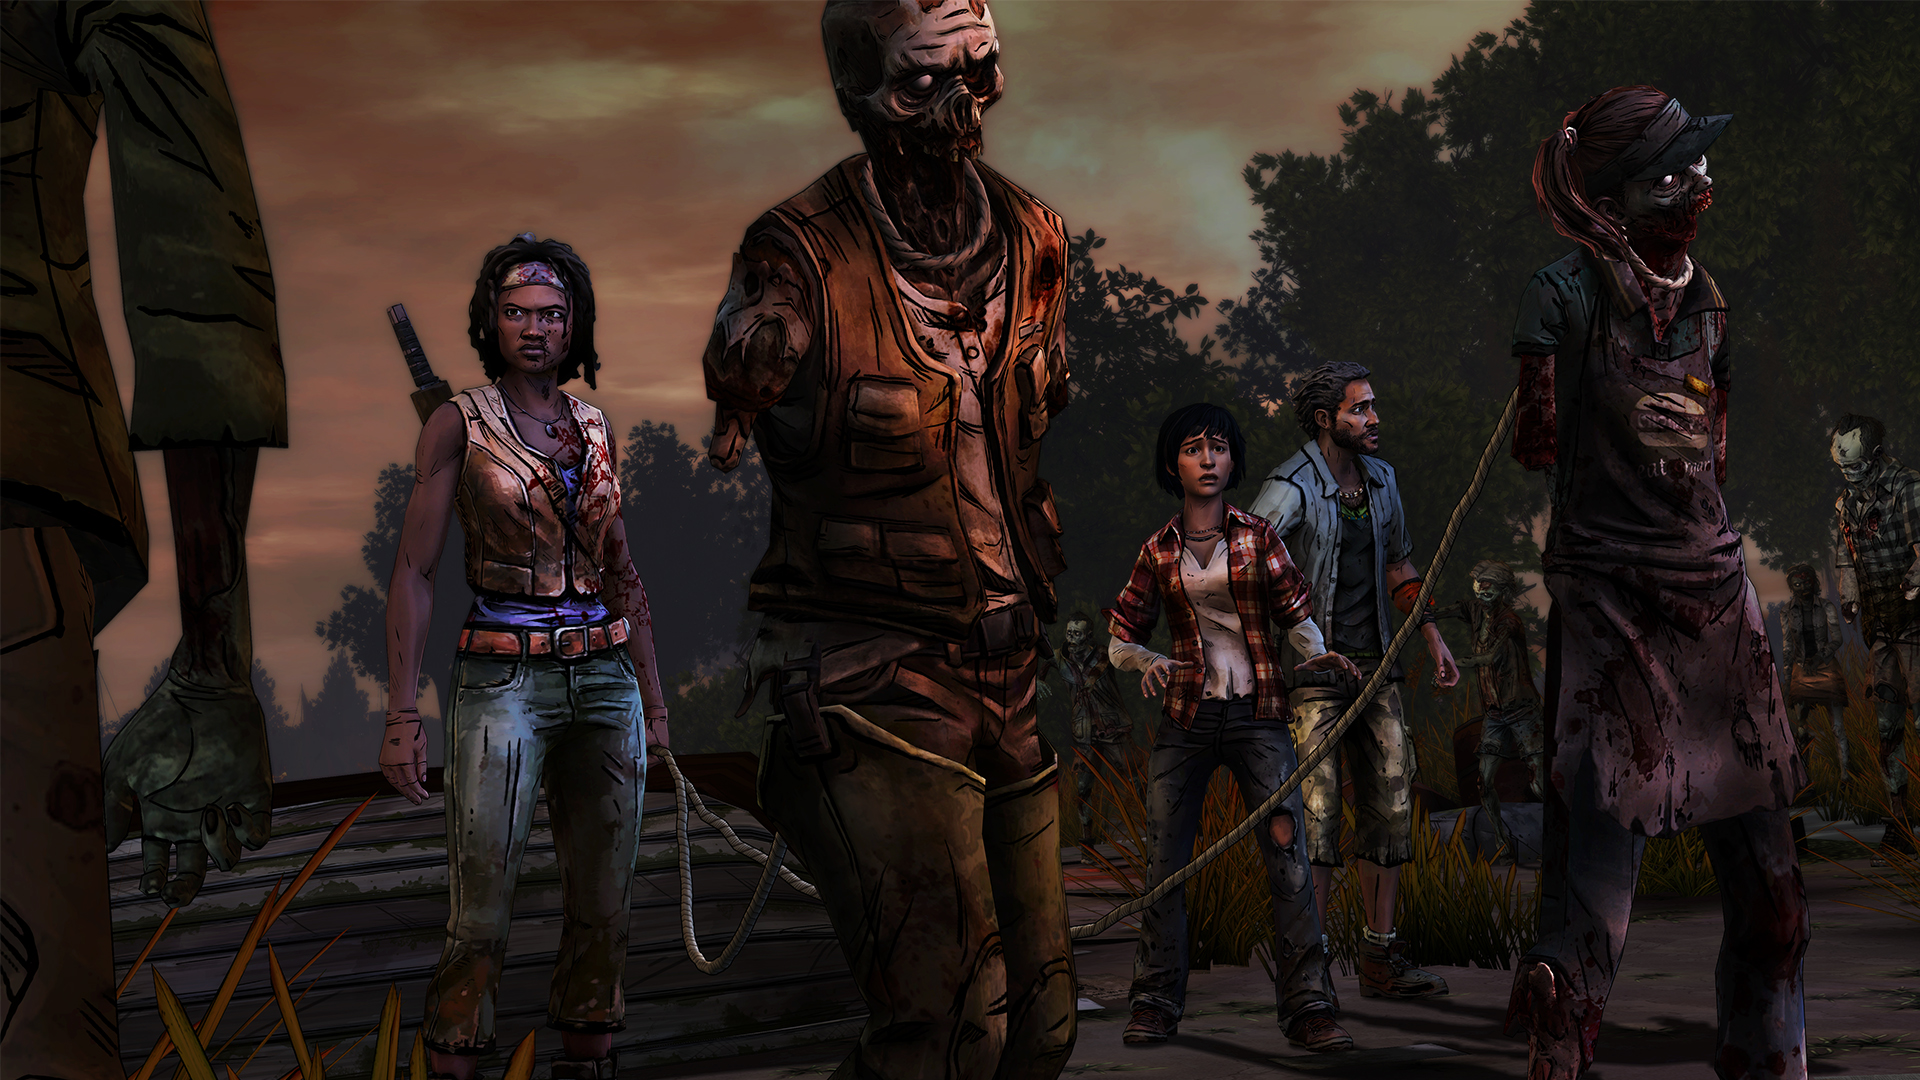 The Walking Dead: Michonne Episode 2 - Give No Shelter